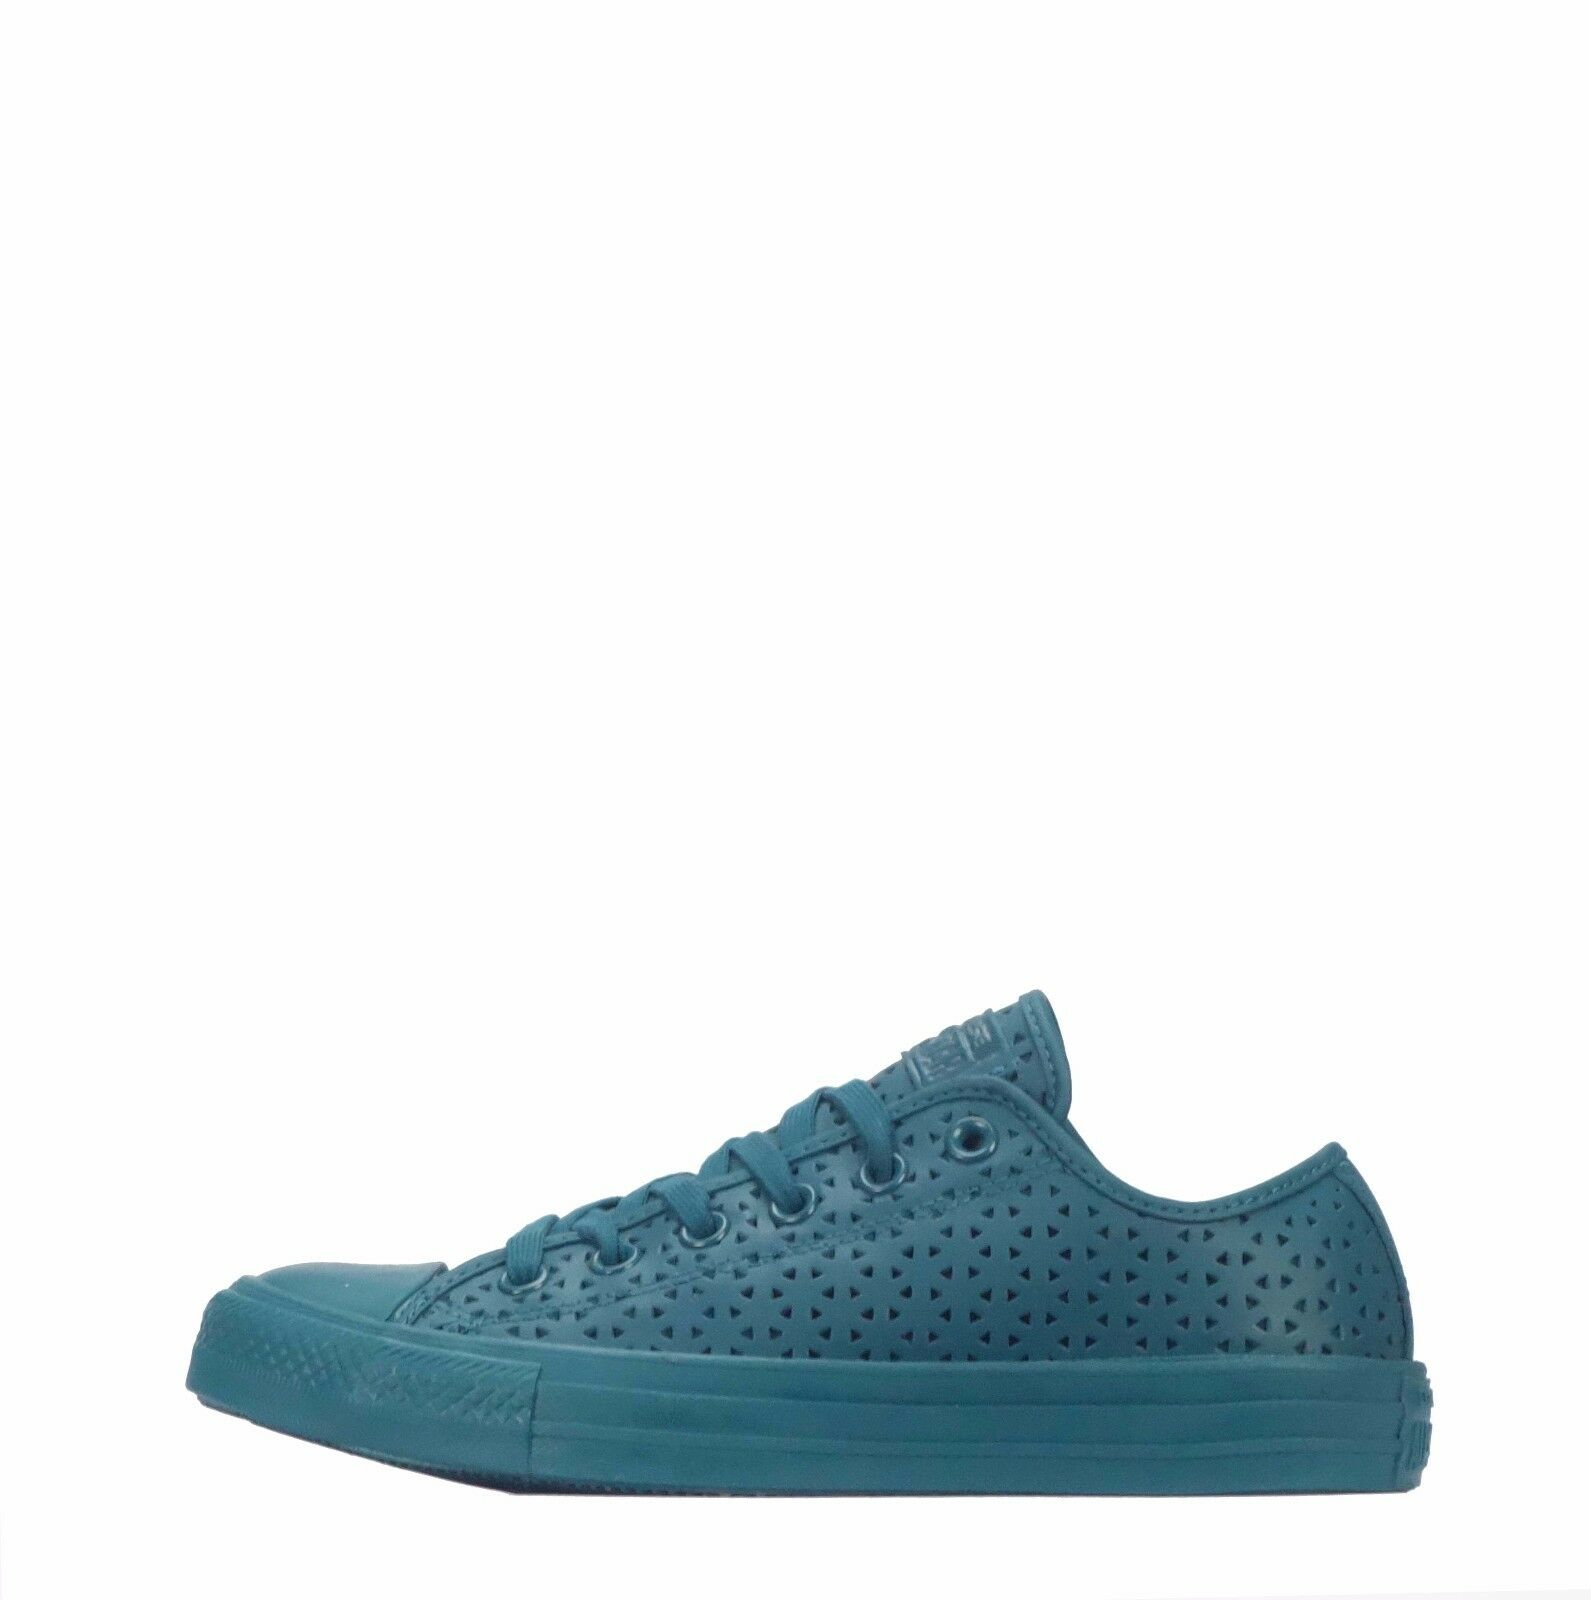 Converse Chuck Taylor All Star Ox Performated Women Low Top Trainers